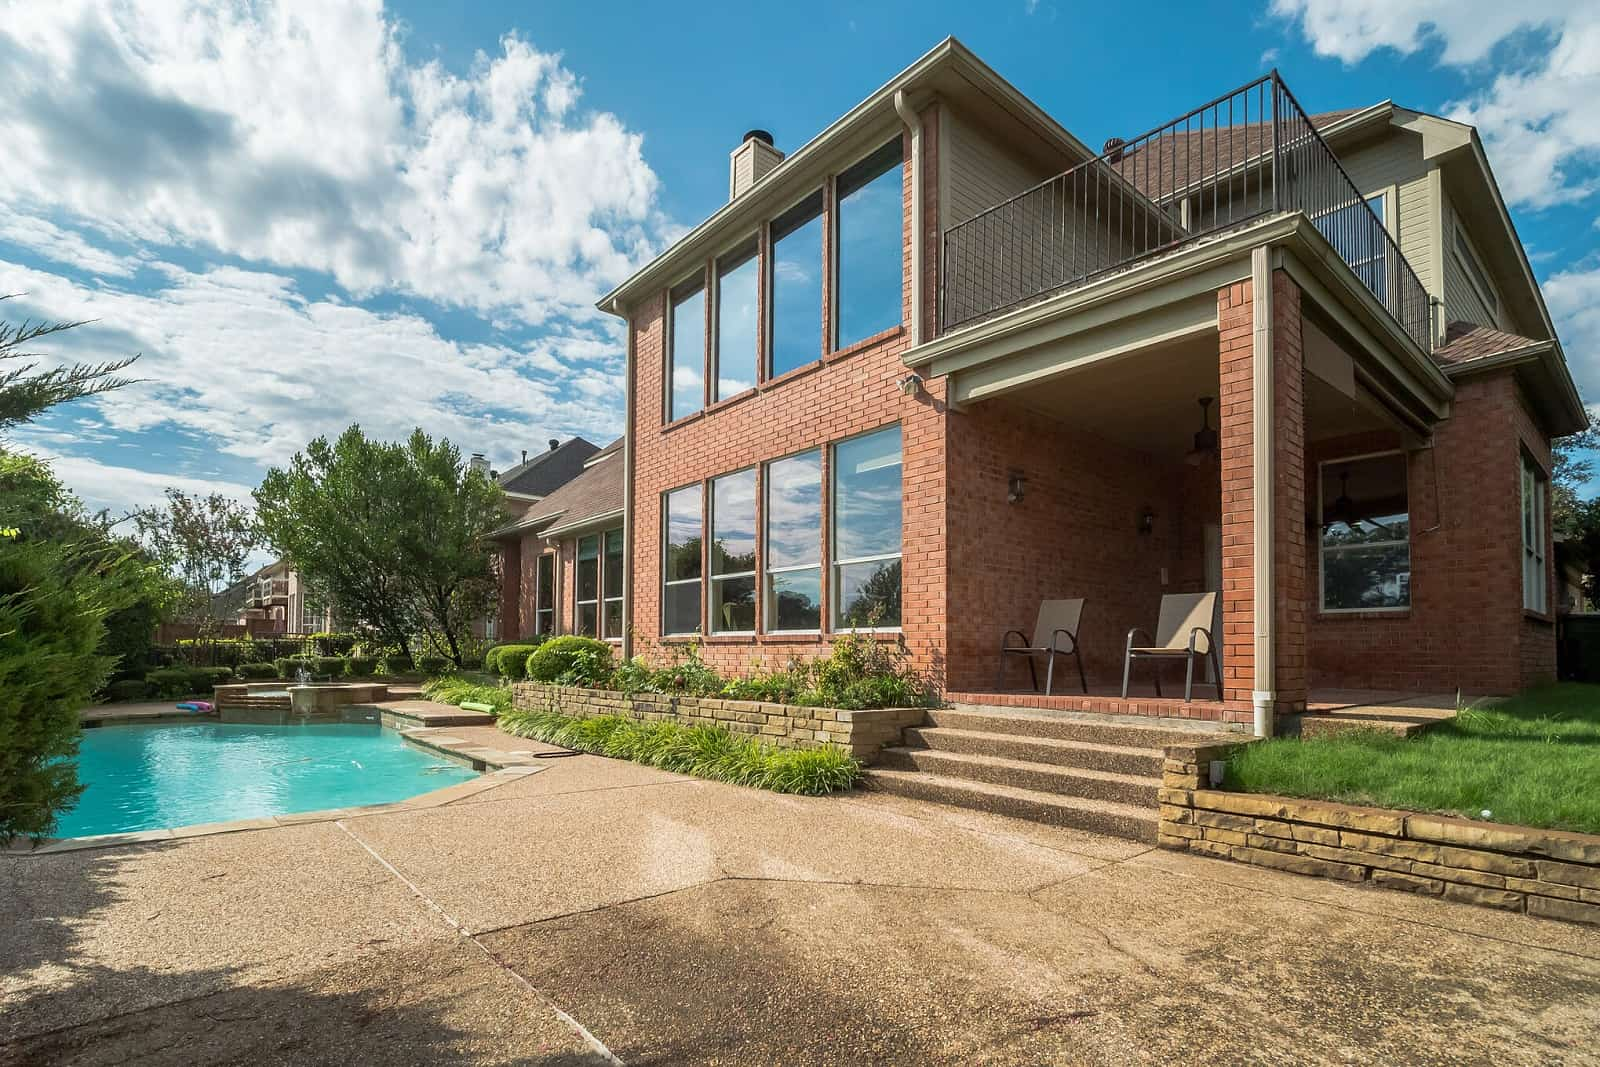 Real Estate Photography in Plano - TX - Front View